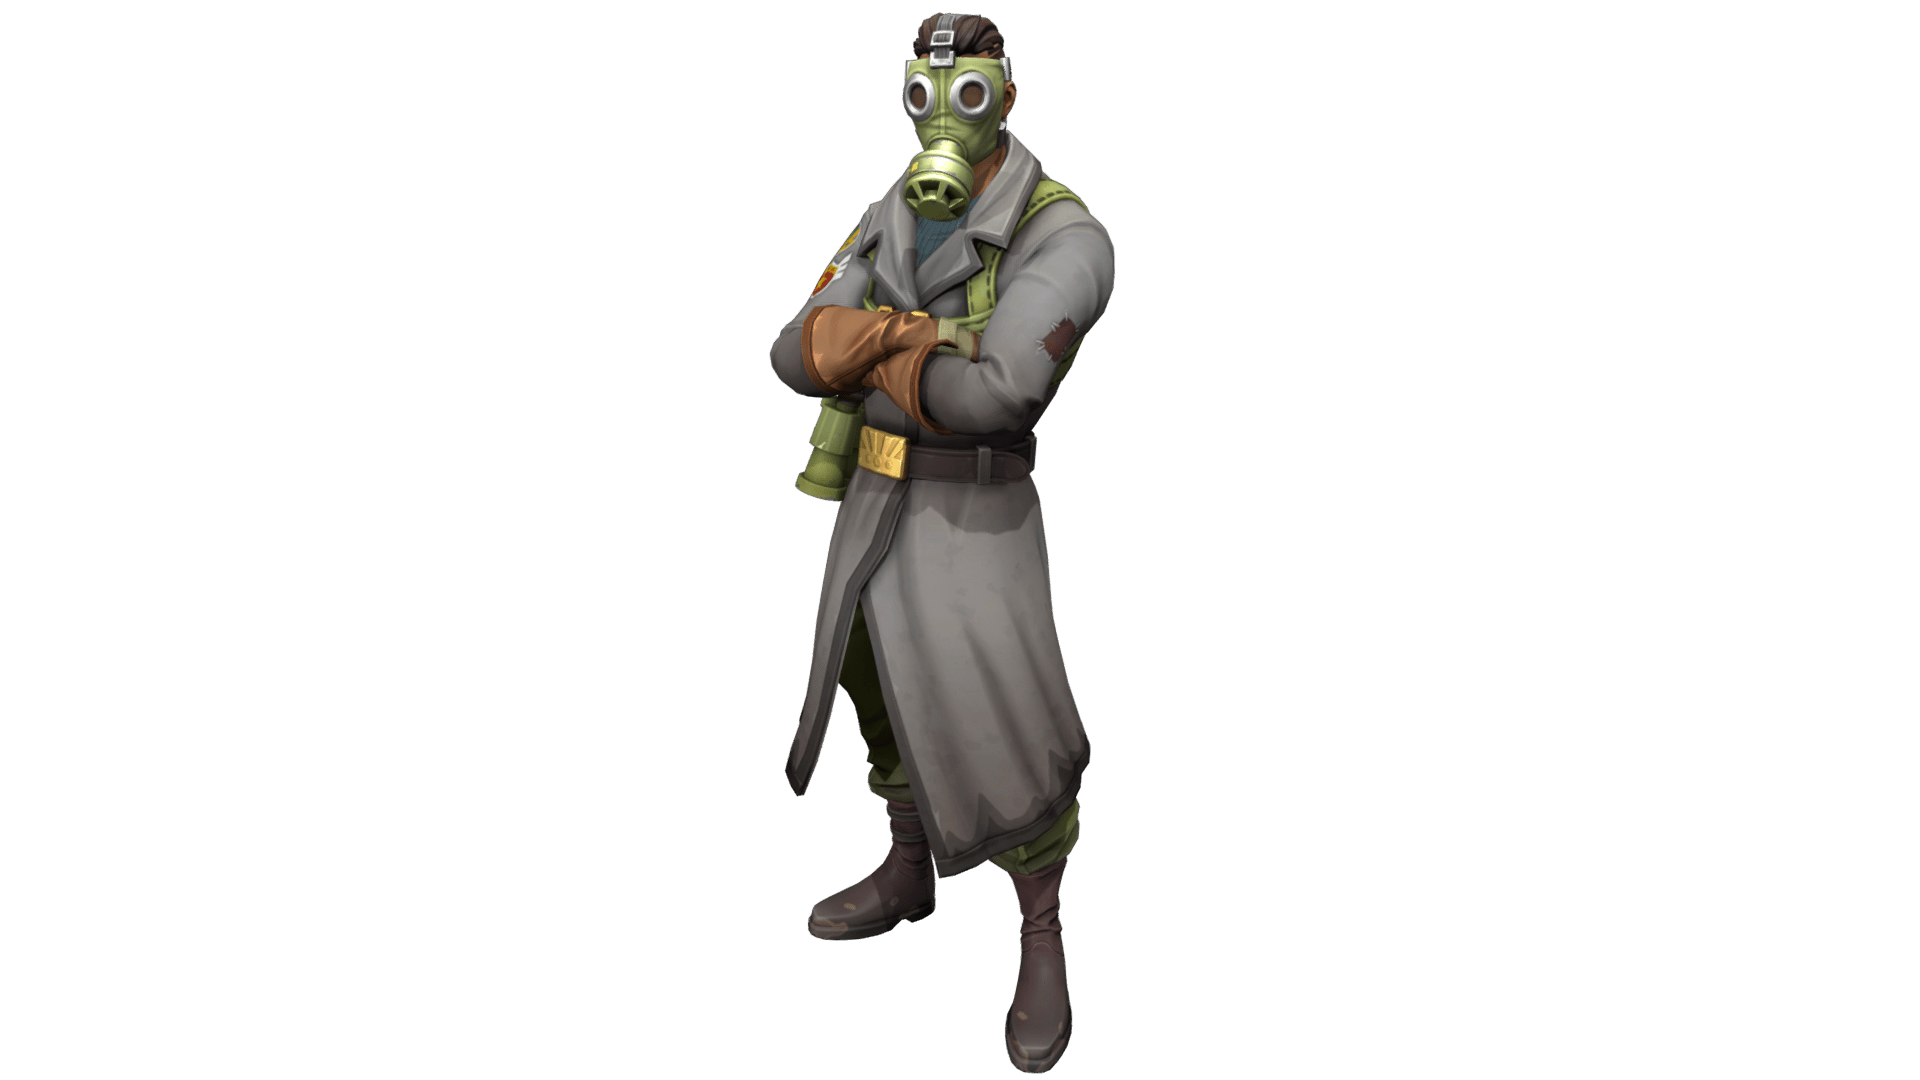 Game Stalker Png - S.T.A.L.K.E.R. Game PNG Clipart | PNG Mart